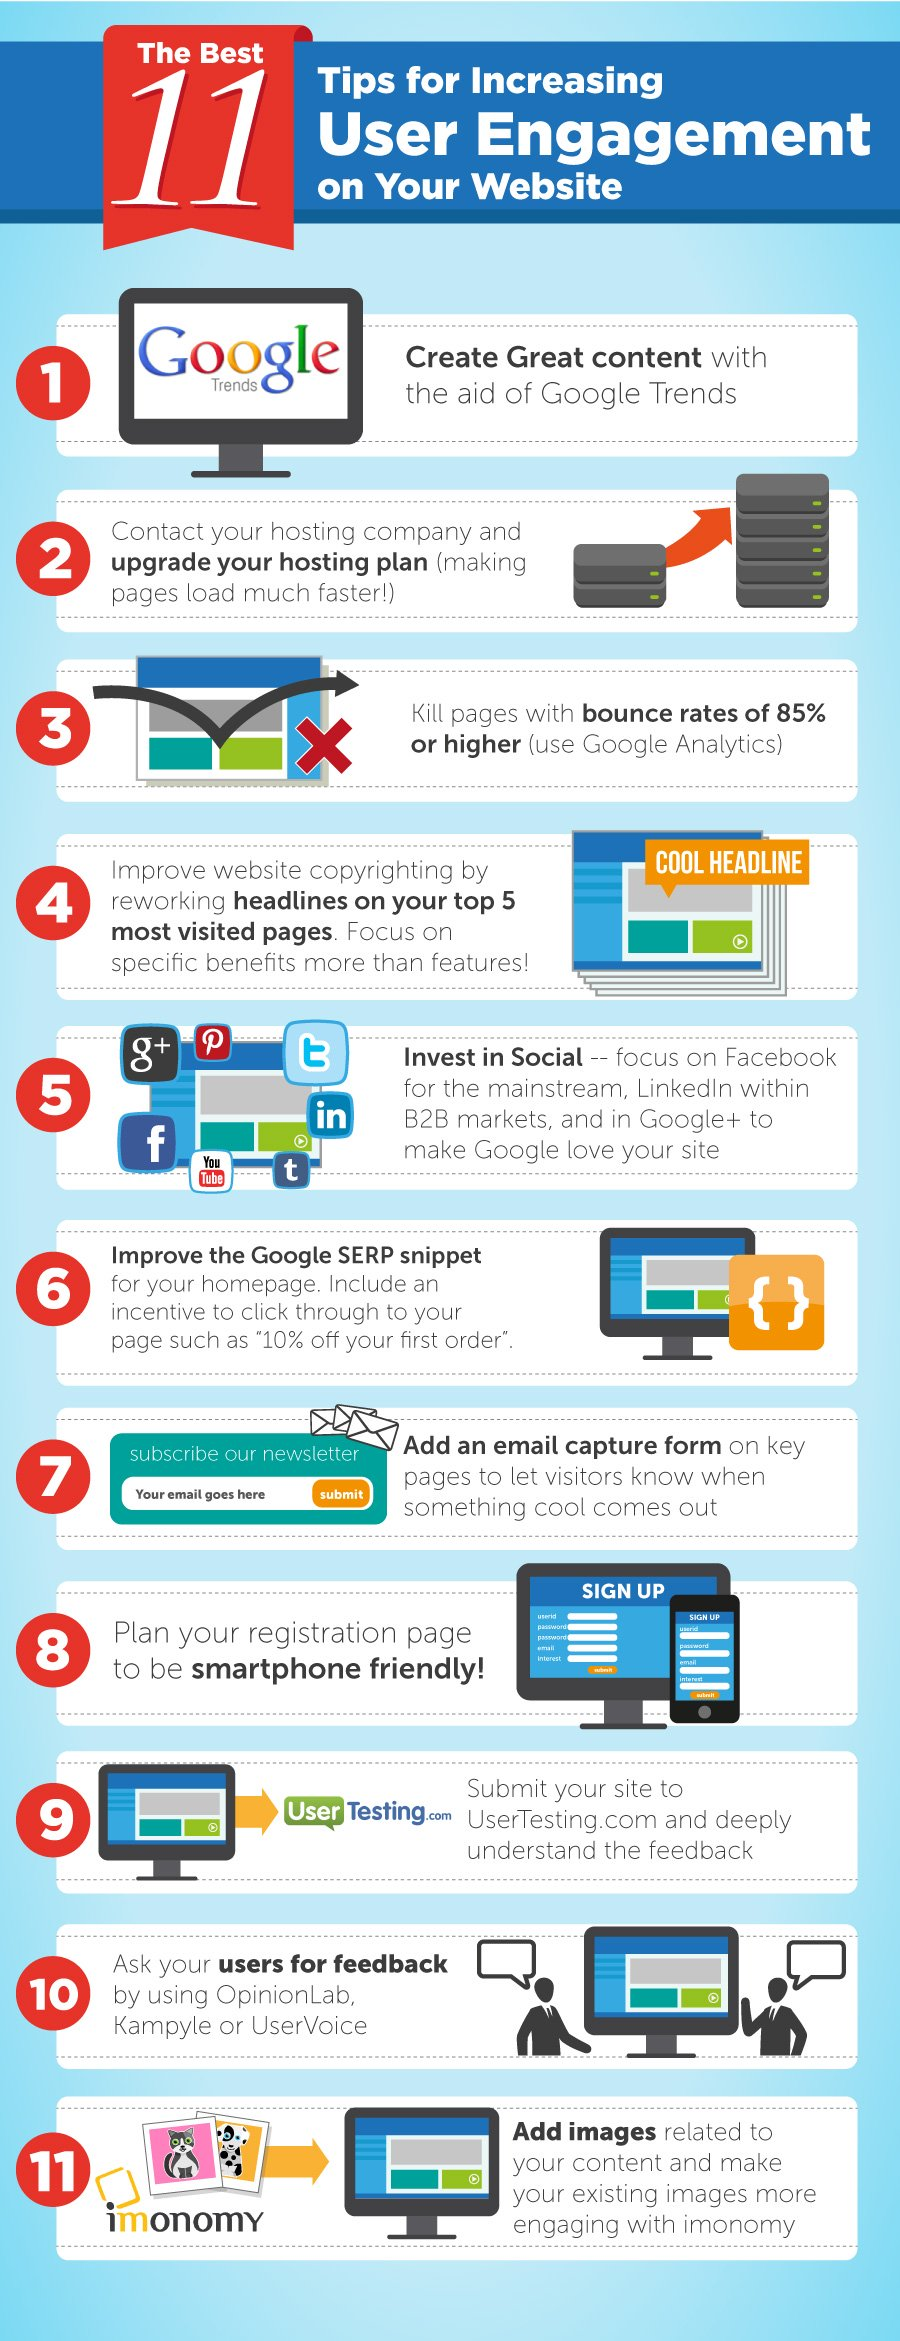 Best-11-tips-for-increasing-user-engagement-on-your-website